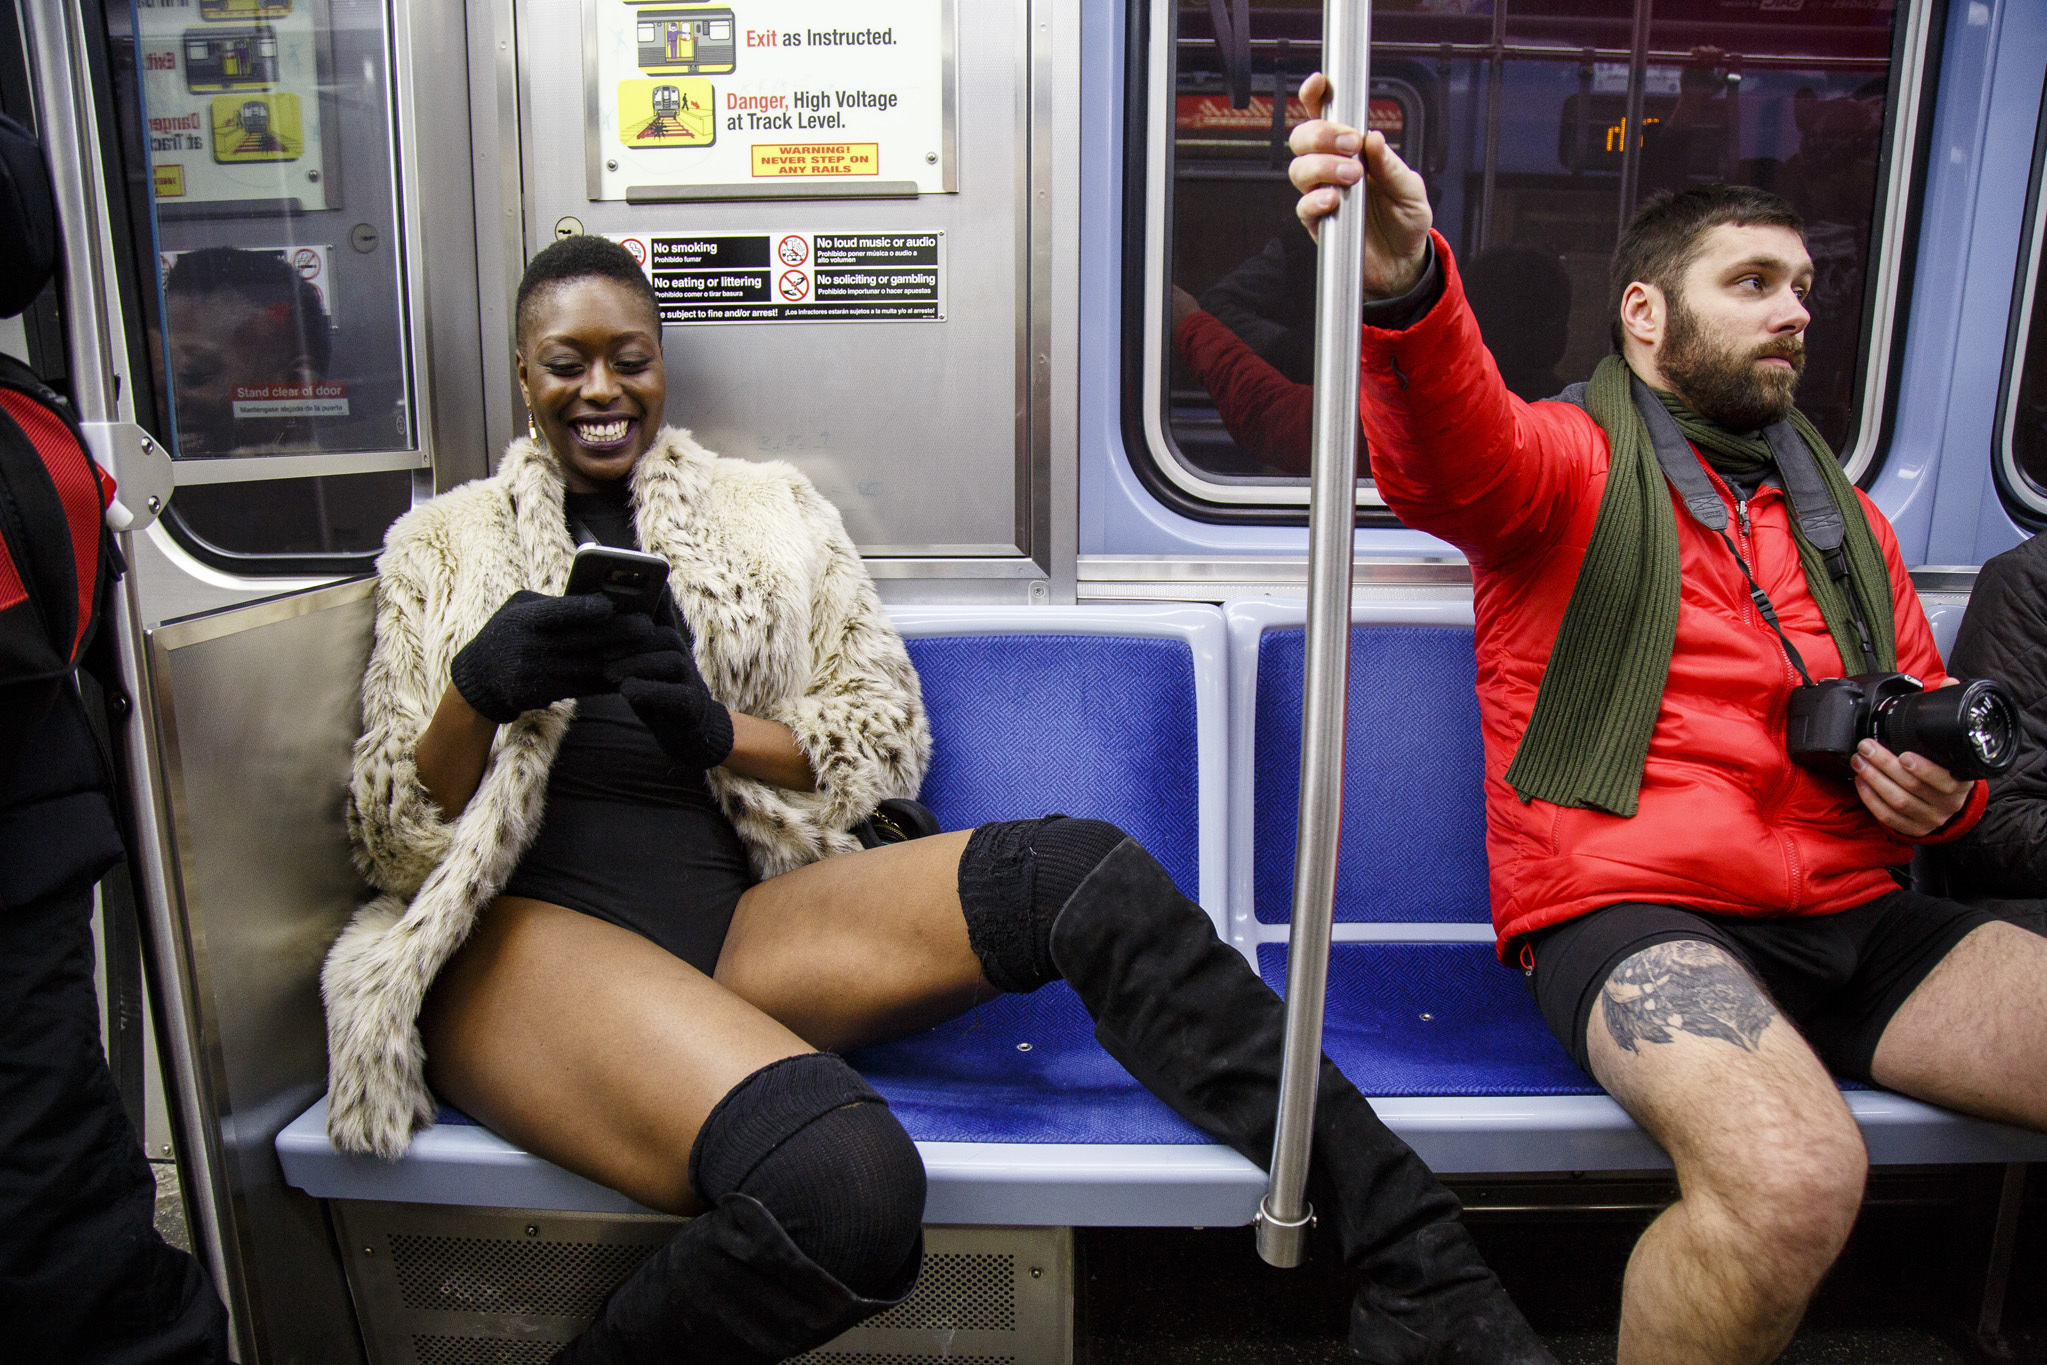 2018 No Pants Subway Ride